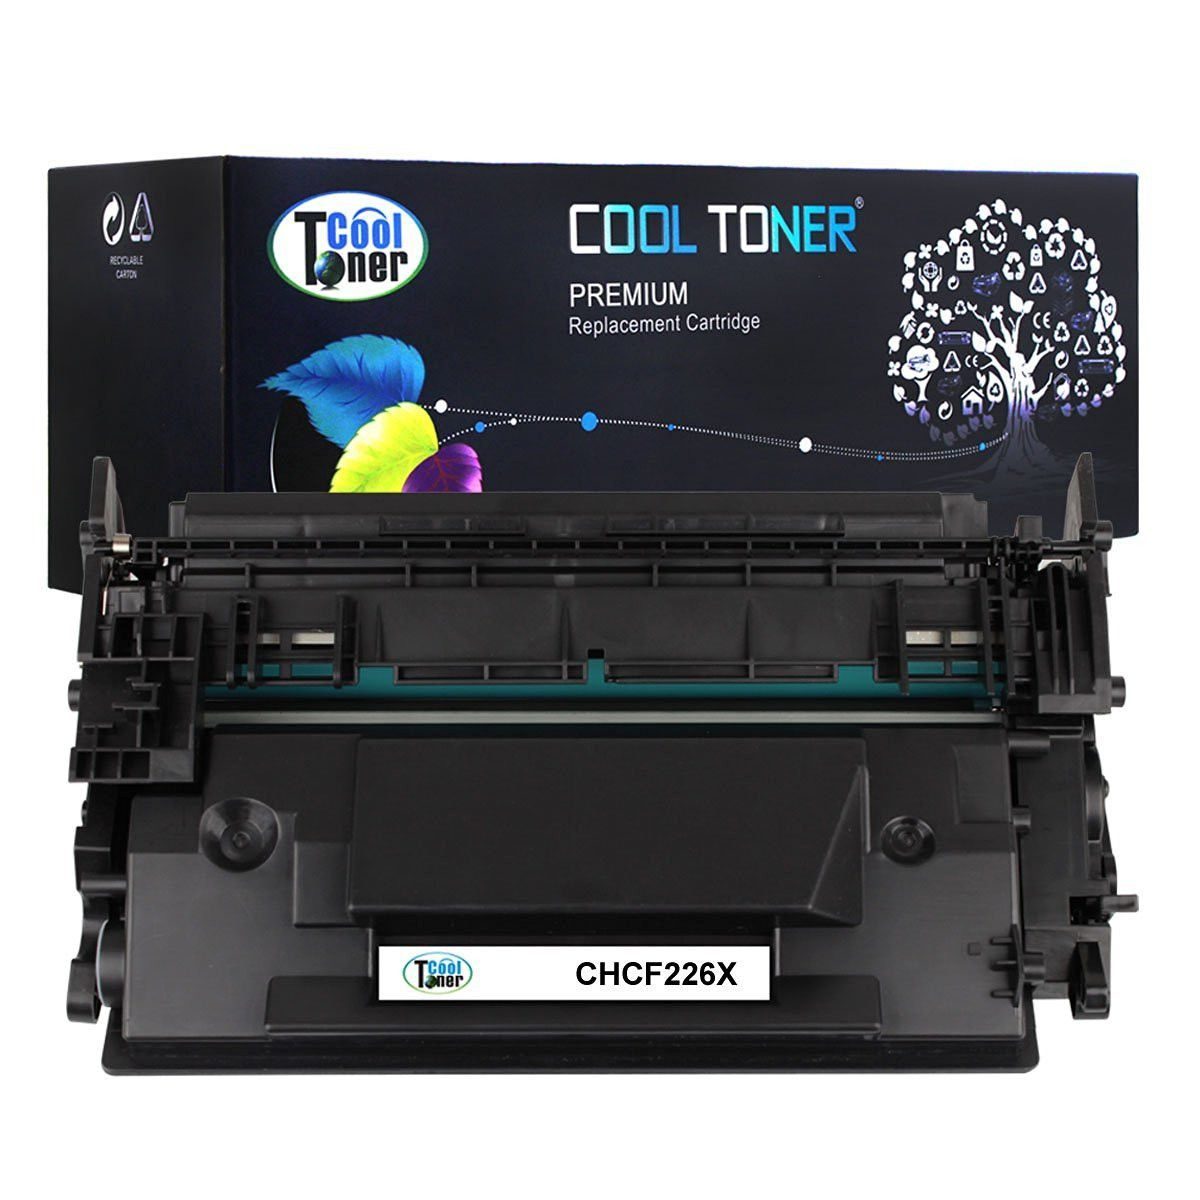 Cool Toner Compatible Toner Cartridge CT-CF226X for HP LaserJet Pro M402dn MFP M426dw